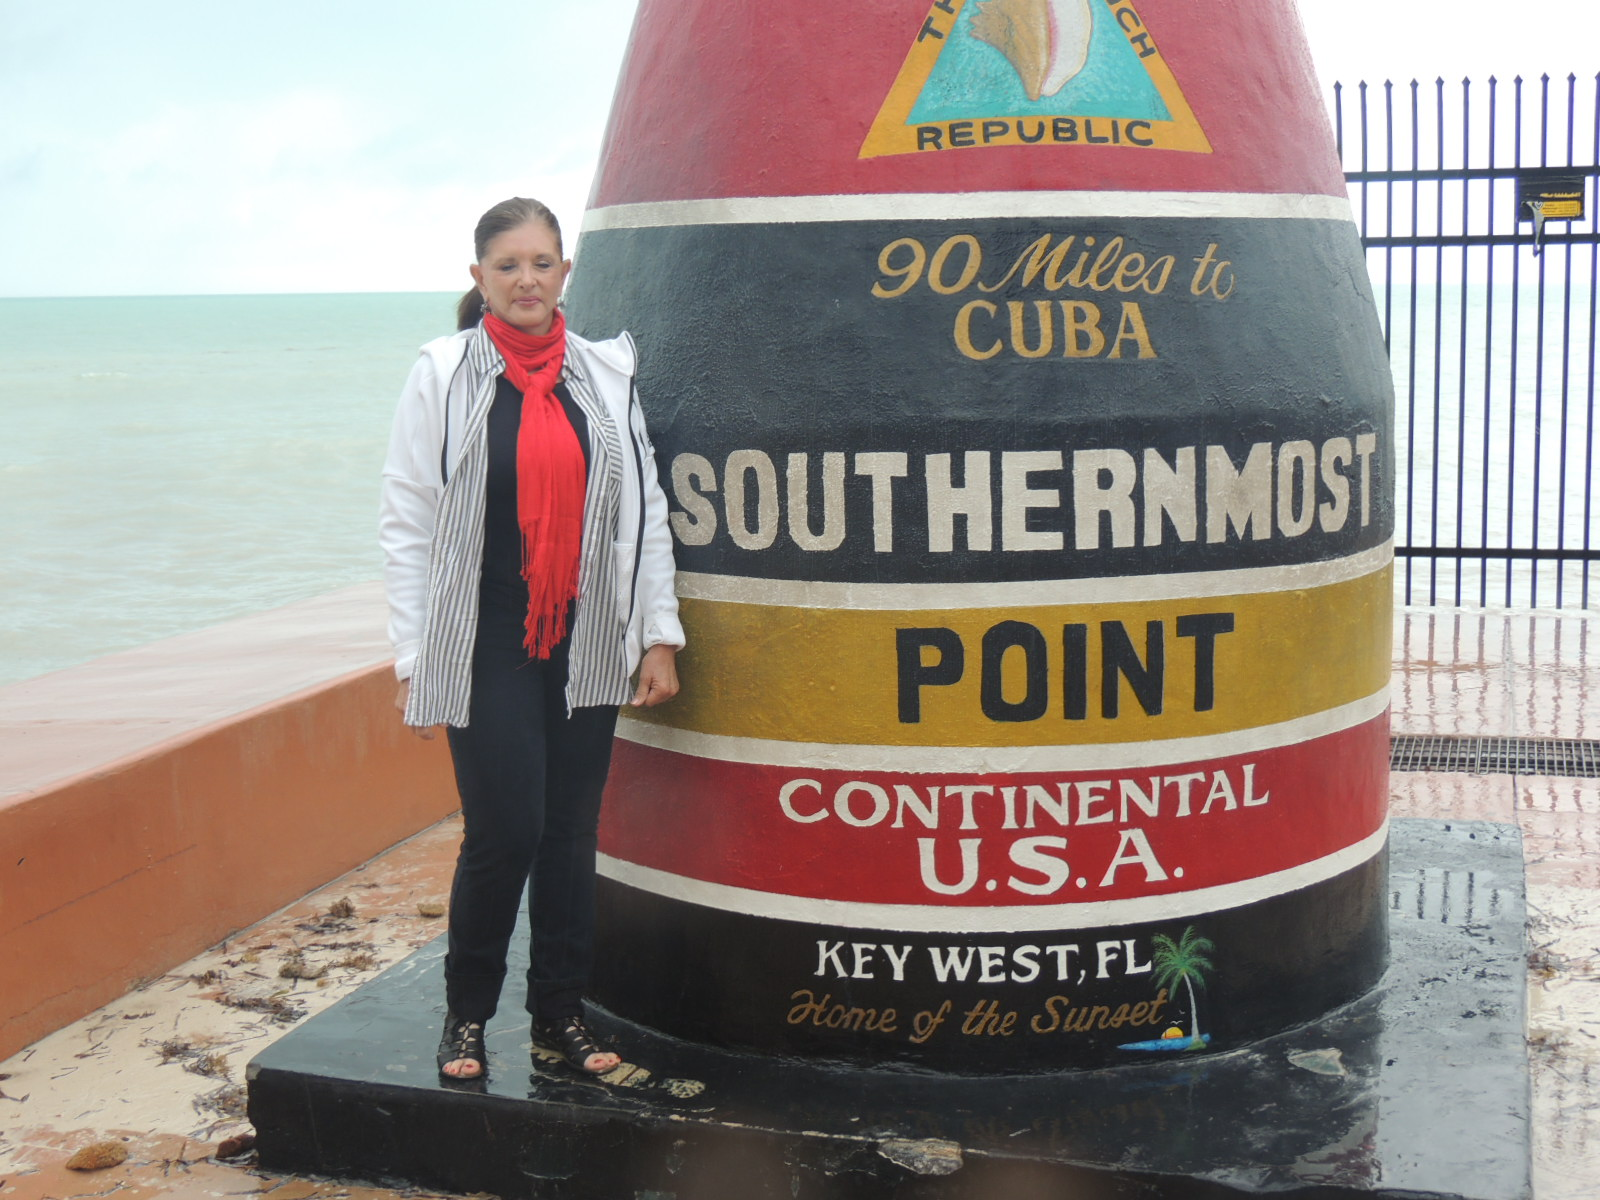 Annie standing in front of the Southernmost Point in the Continental USA.